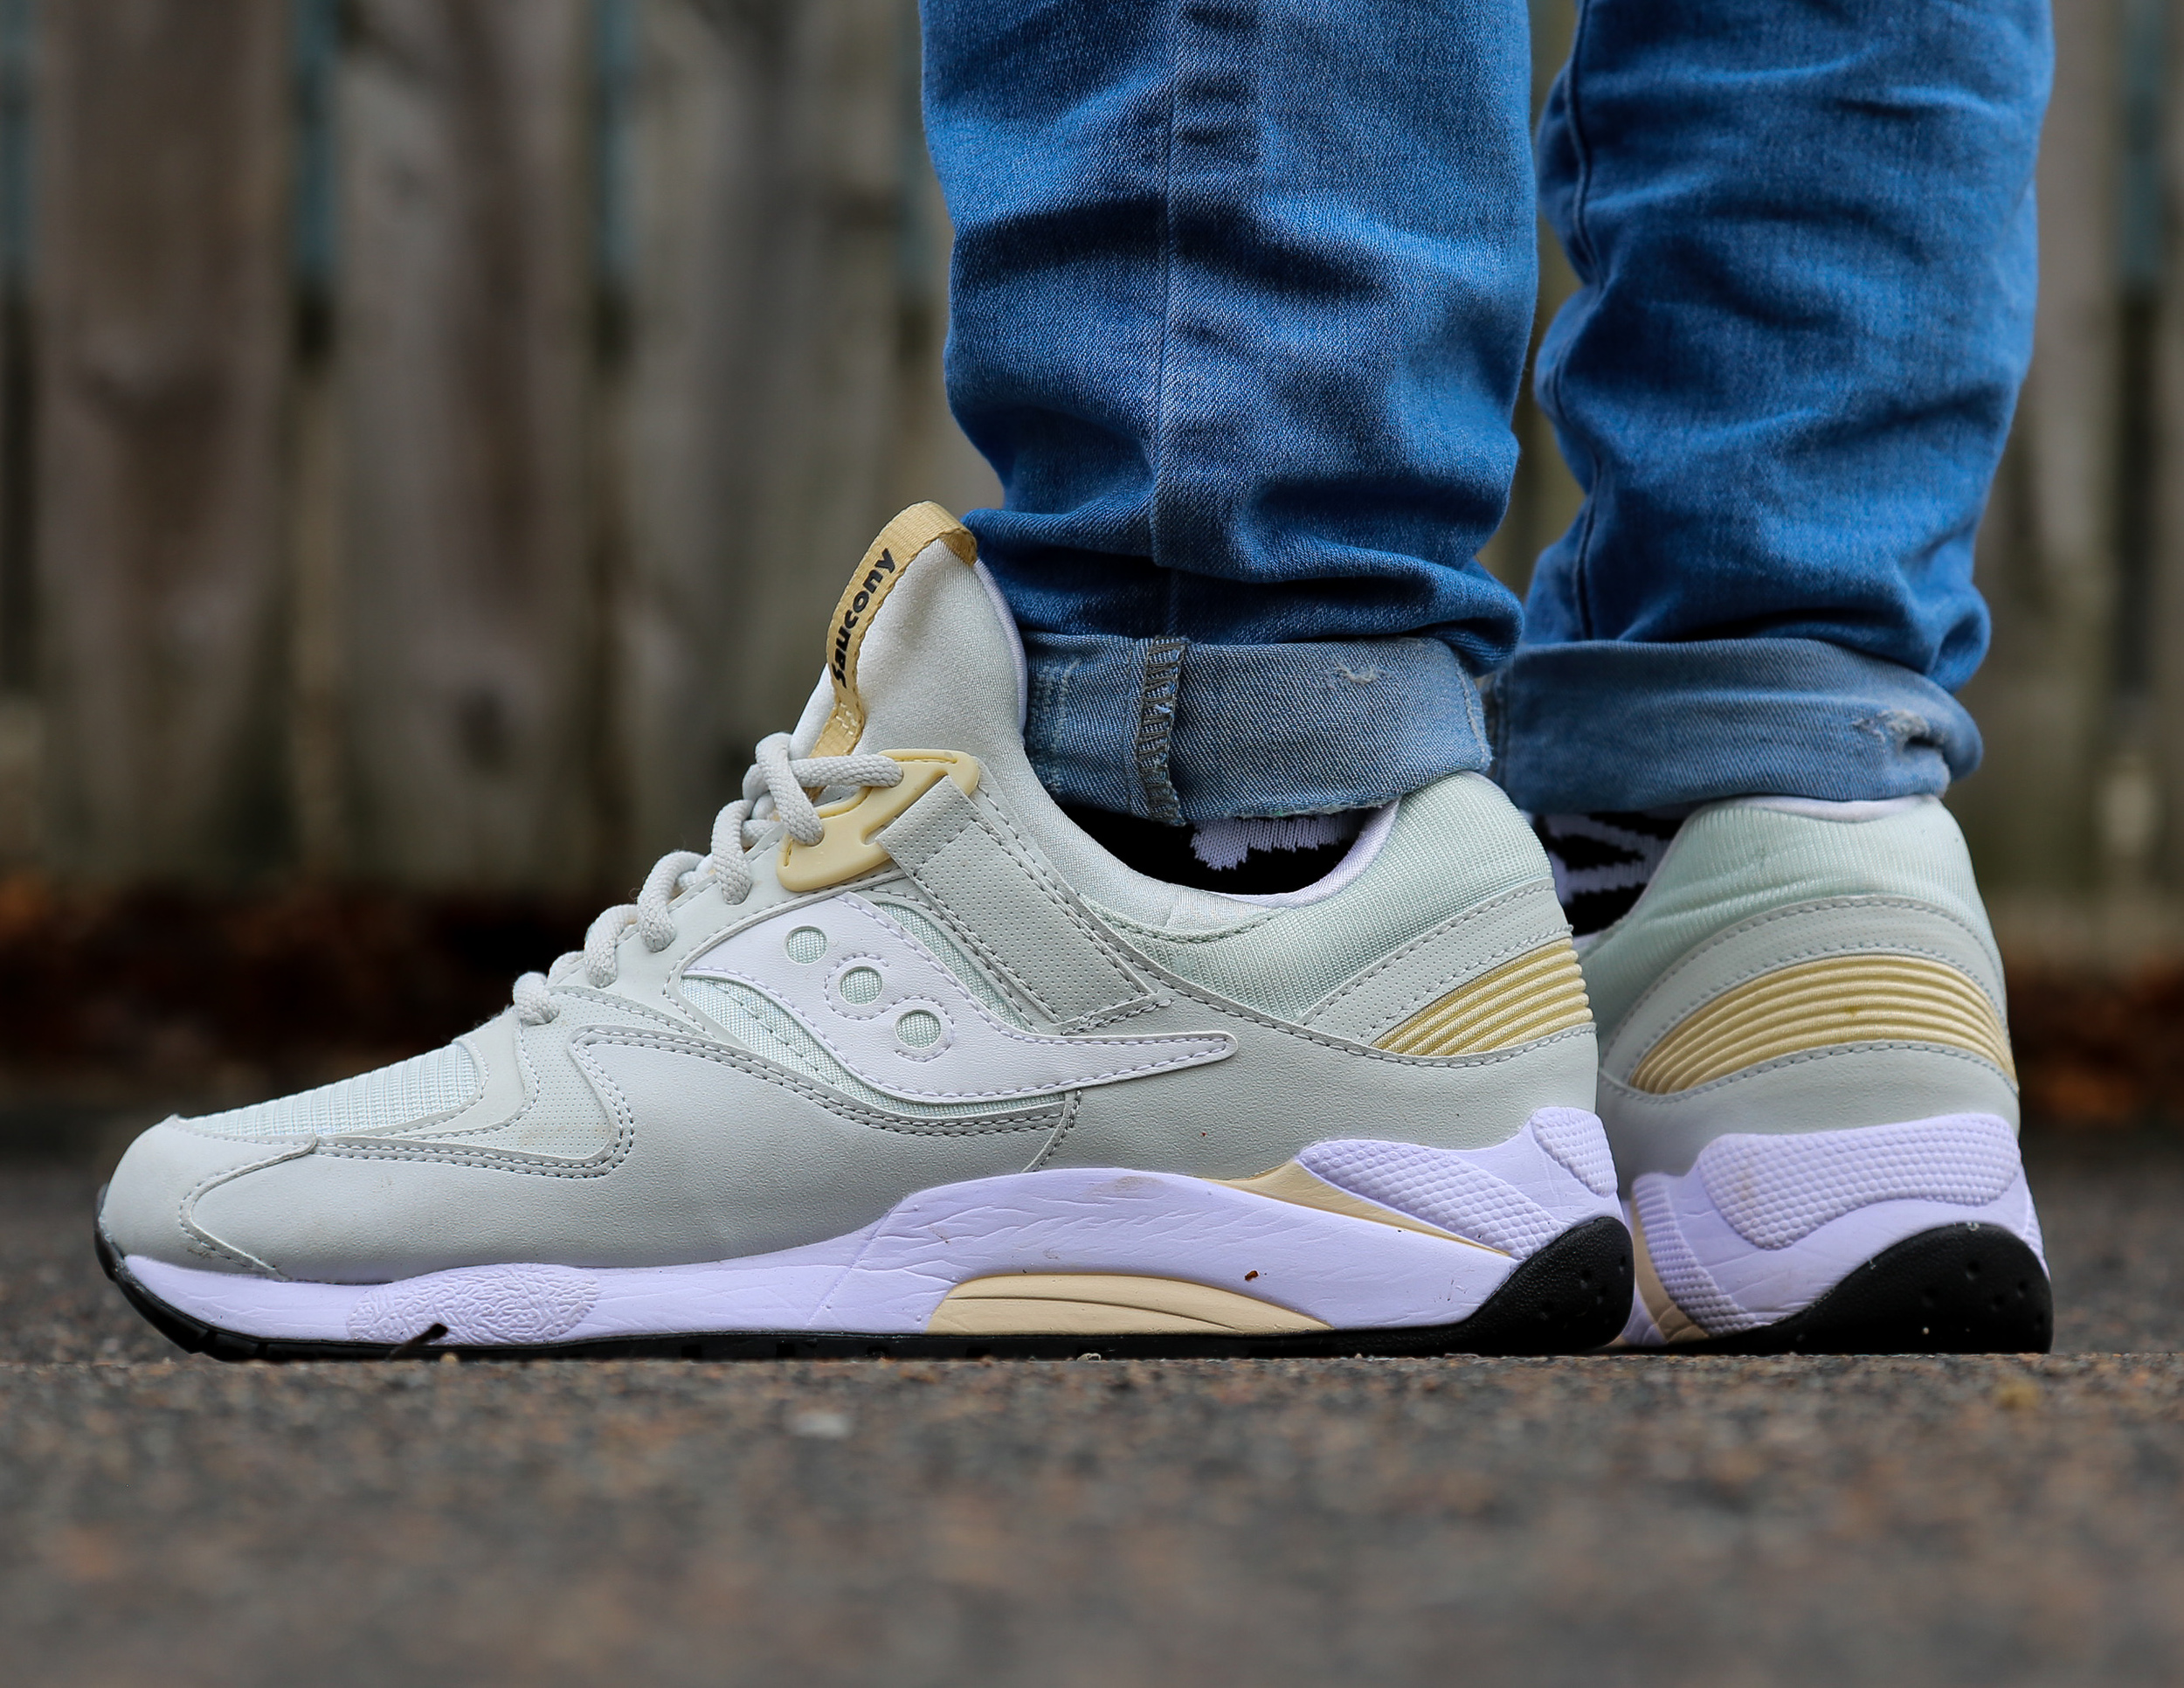 Saucony Grid 9000 In Light Grey Available Now – Feature